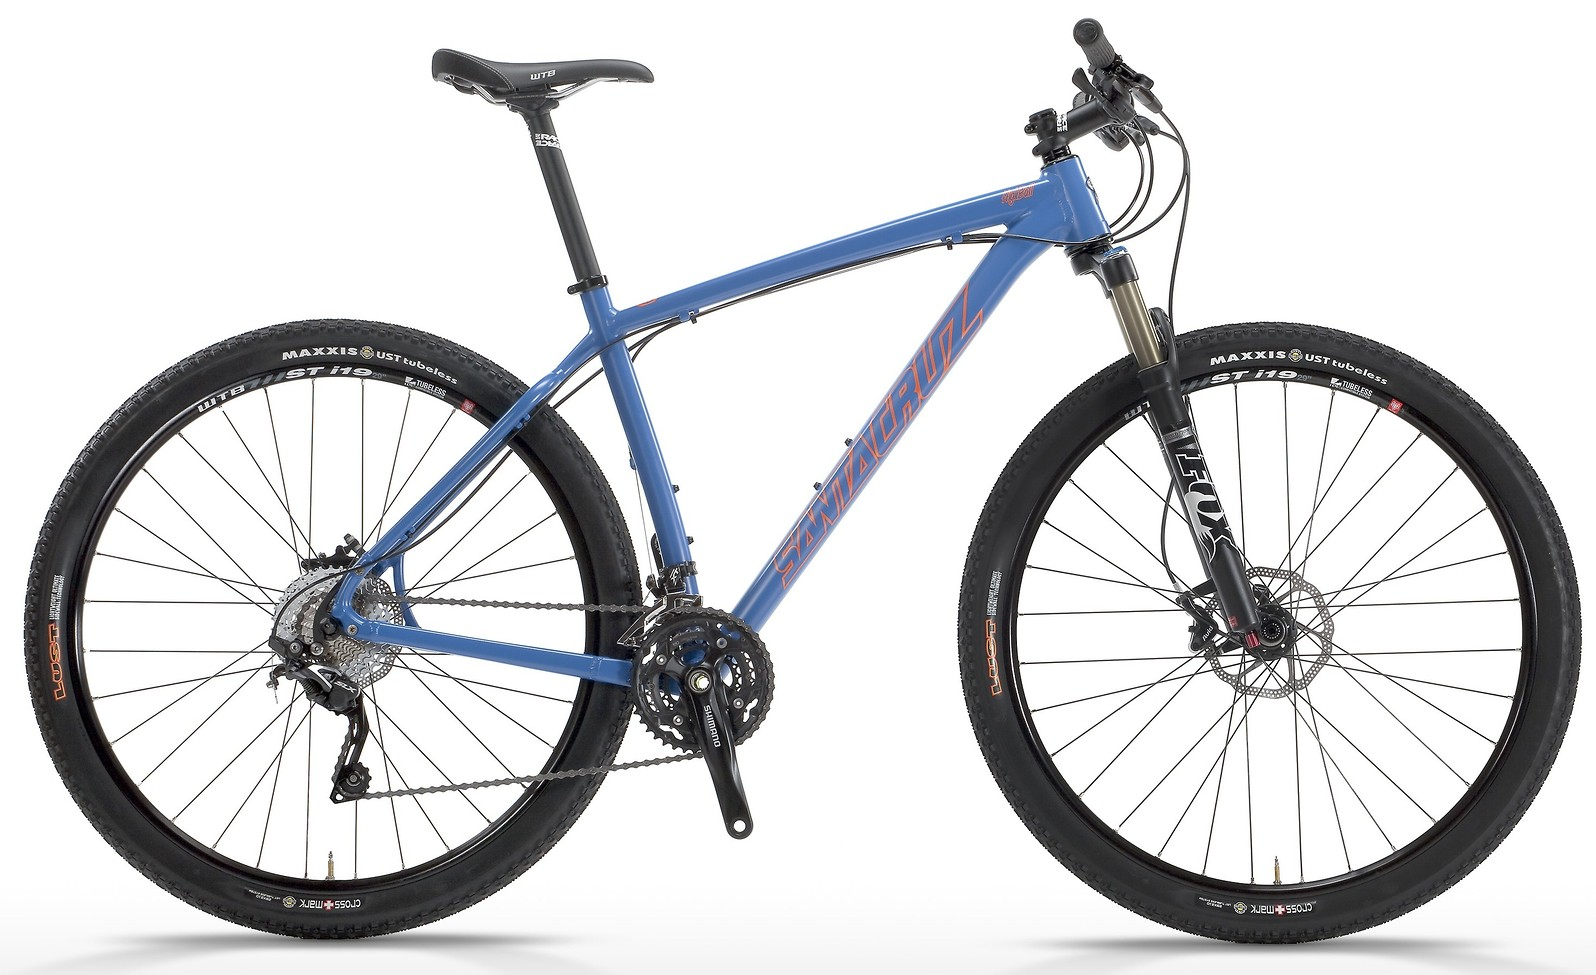 2014 Santa Cruz Highball XX1 XC 29 Bike 2013 HIGHBALLcatalogflat